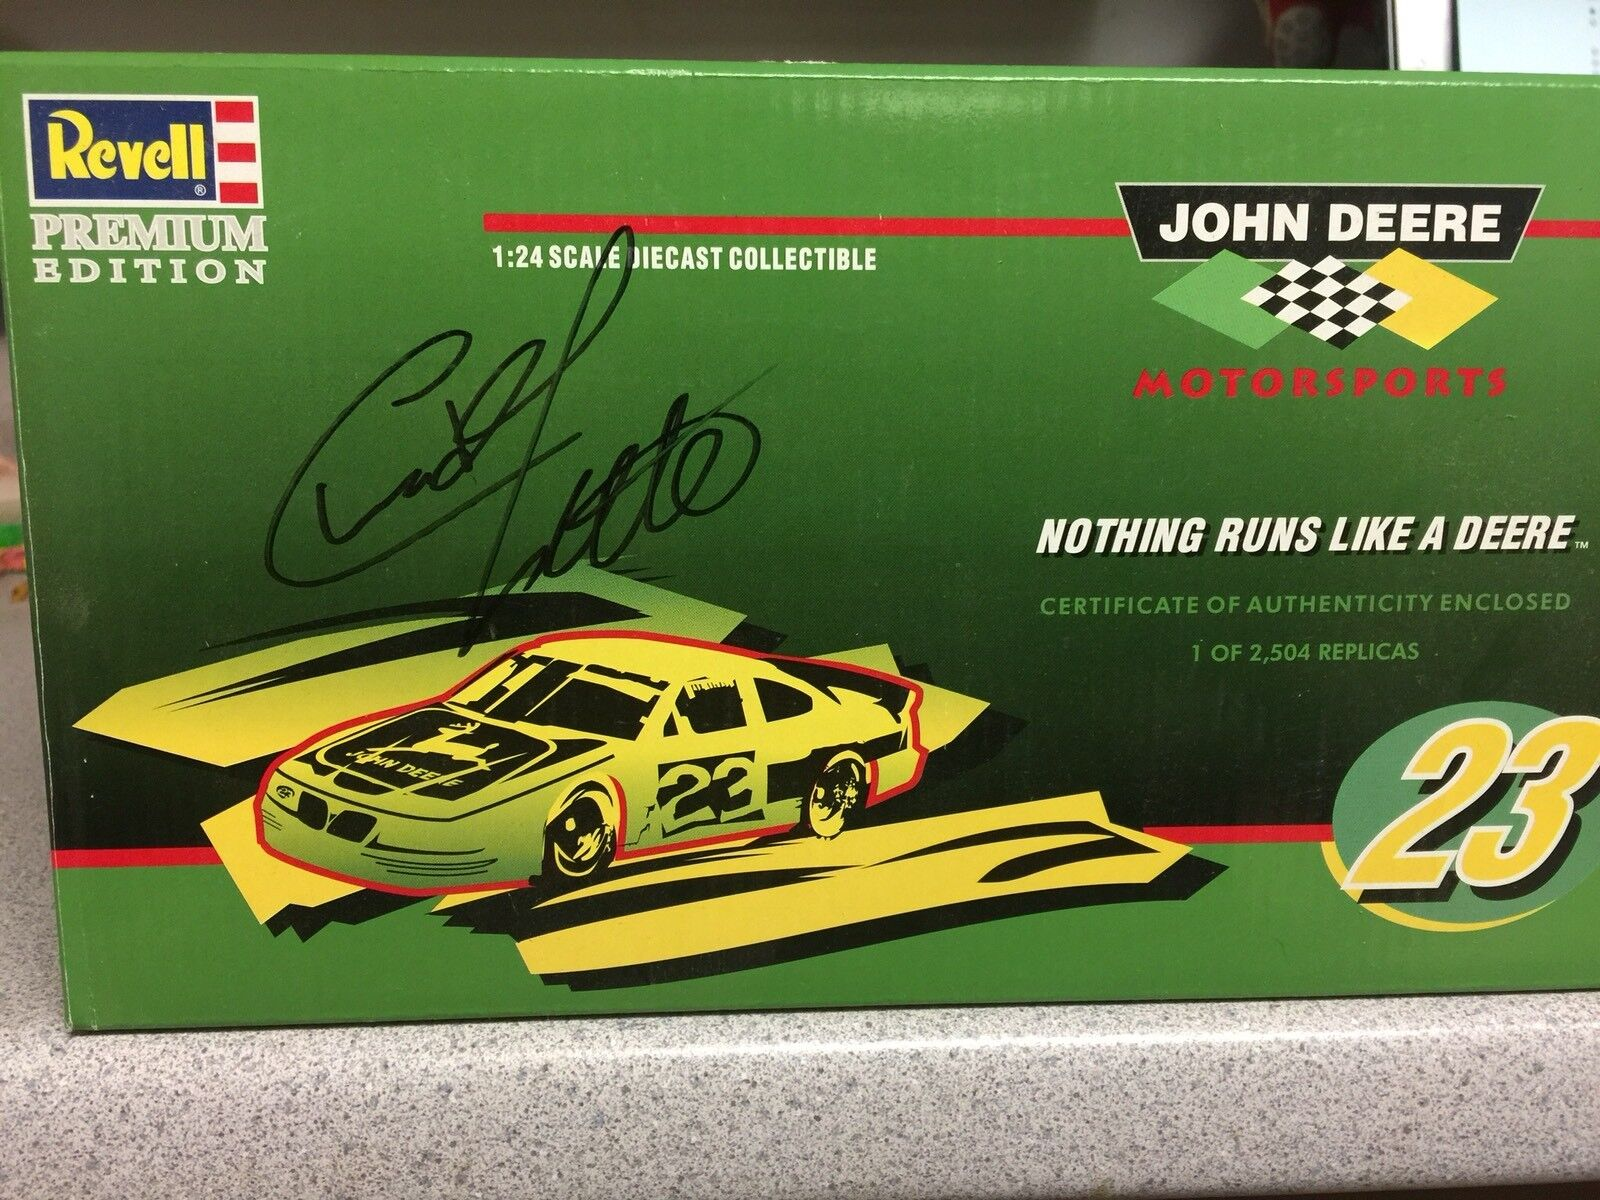 Revel Premium Edition Chad Little Signed Race Car